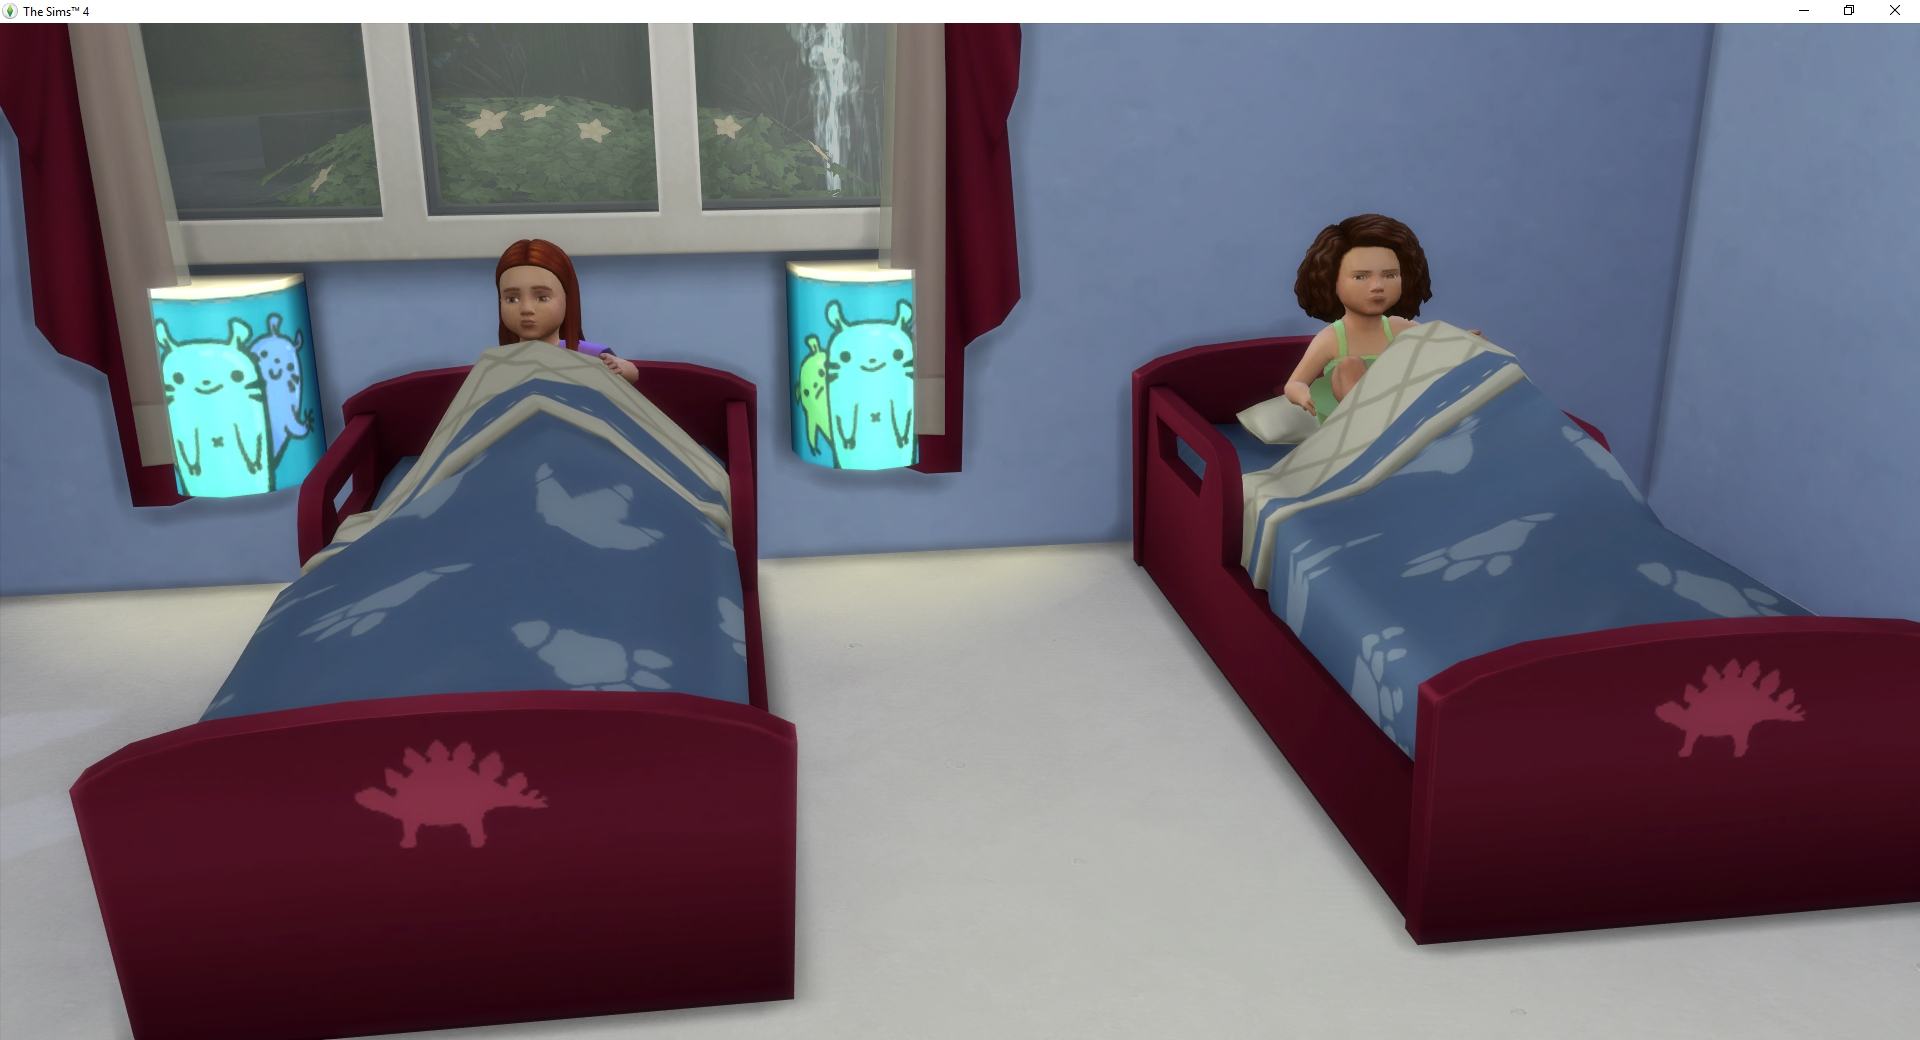 2019-07-04 08_09_47-The Sims™ 4